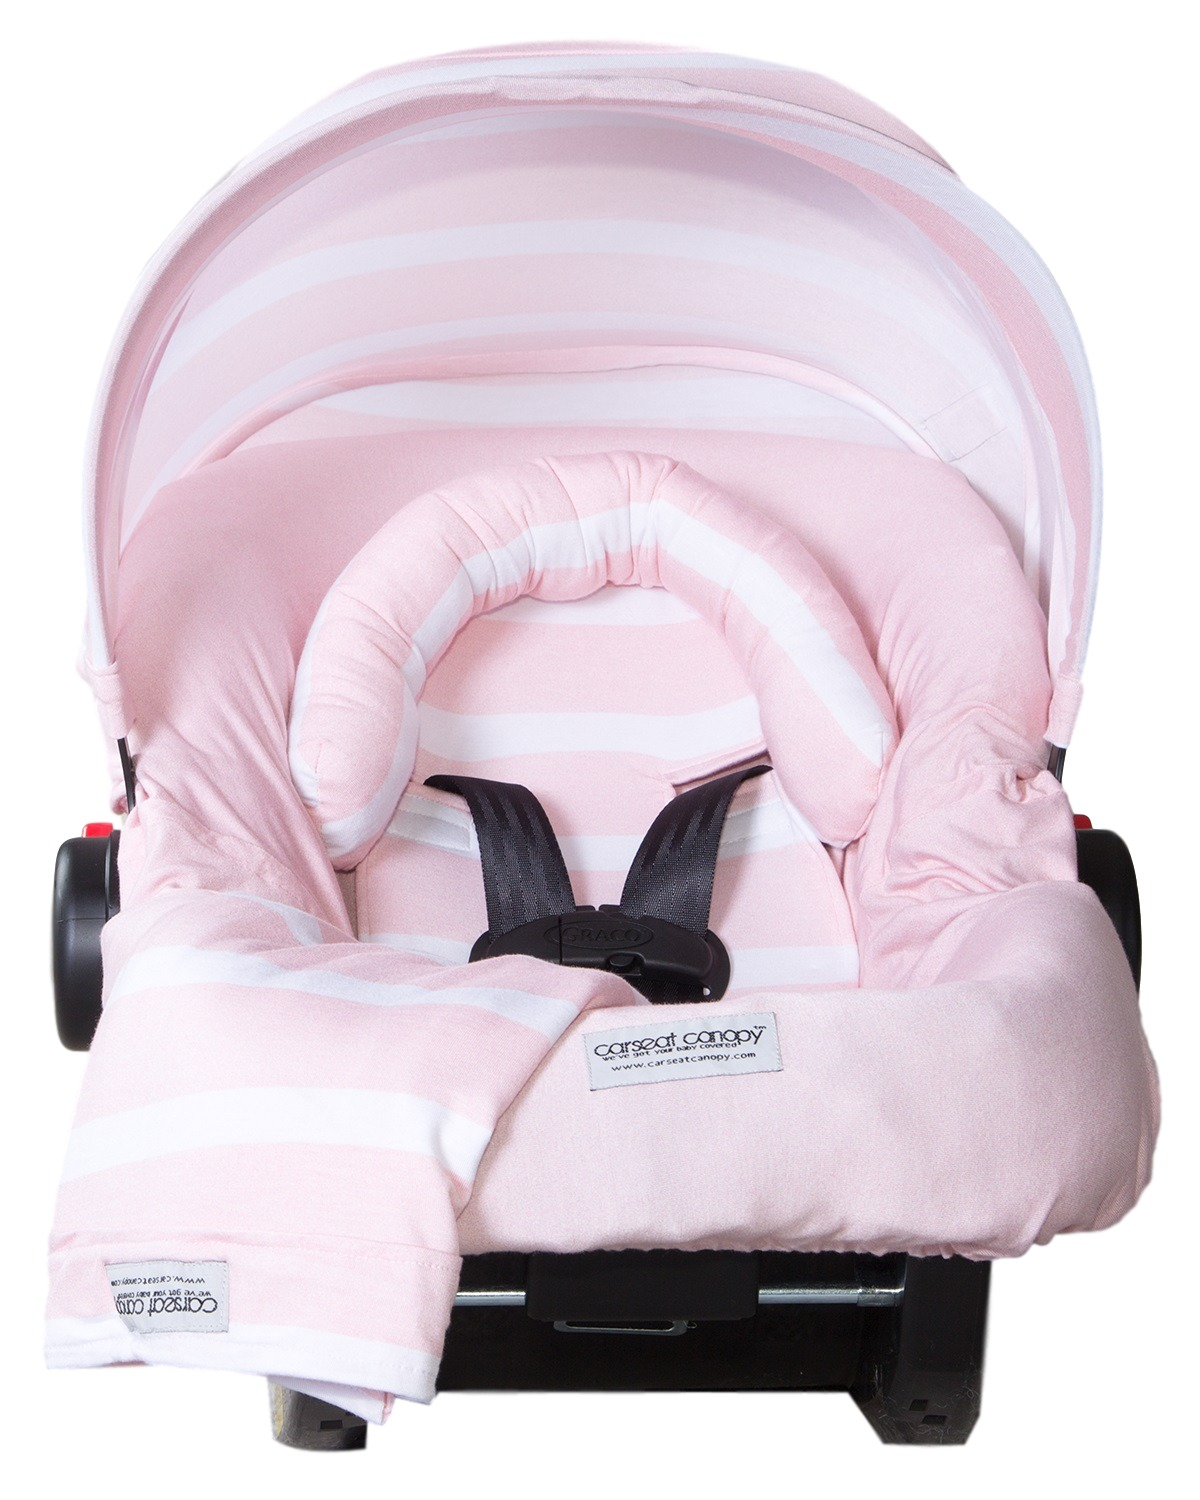 Carseat Canopy 5 pc Whole Caboodle Baby Car seat Cover set Jersey Stretch - Pink Stripes  sc 1 st  Walmart & Carseat Canopy 5 pc Whole Caboodle Baby Car seat Cover set Jersey ...